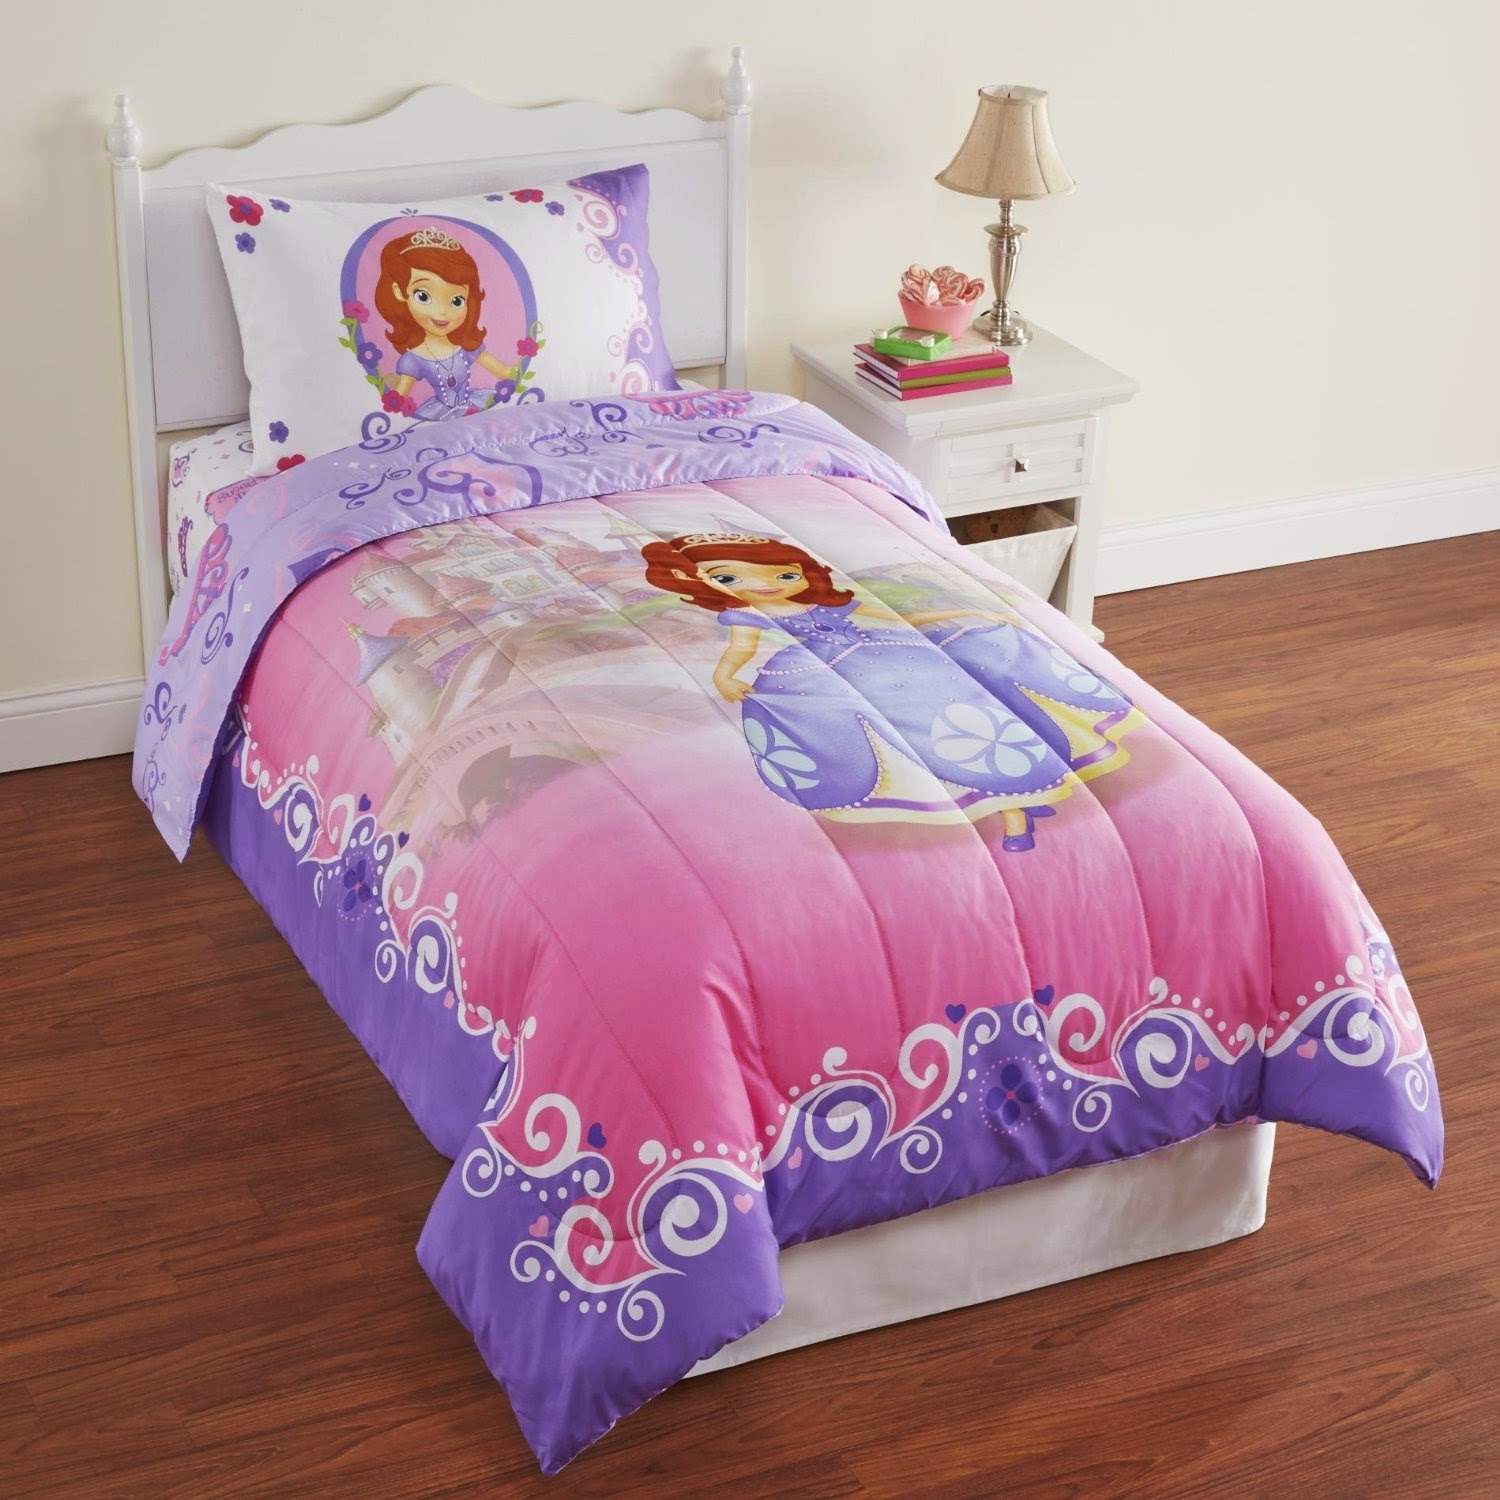 Captivating Sofia The First Comforter And Sheets